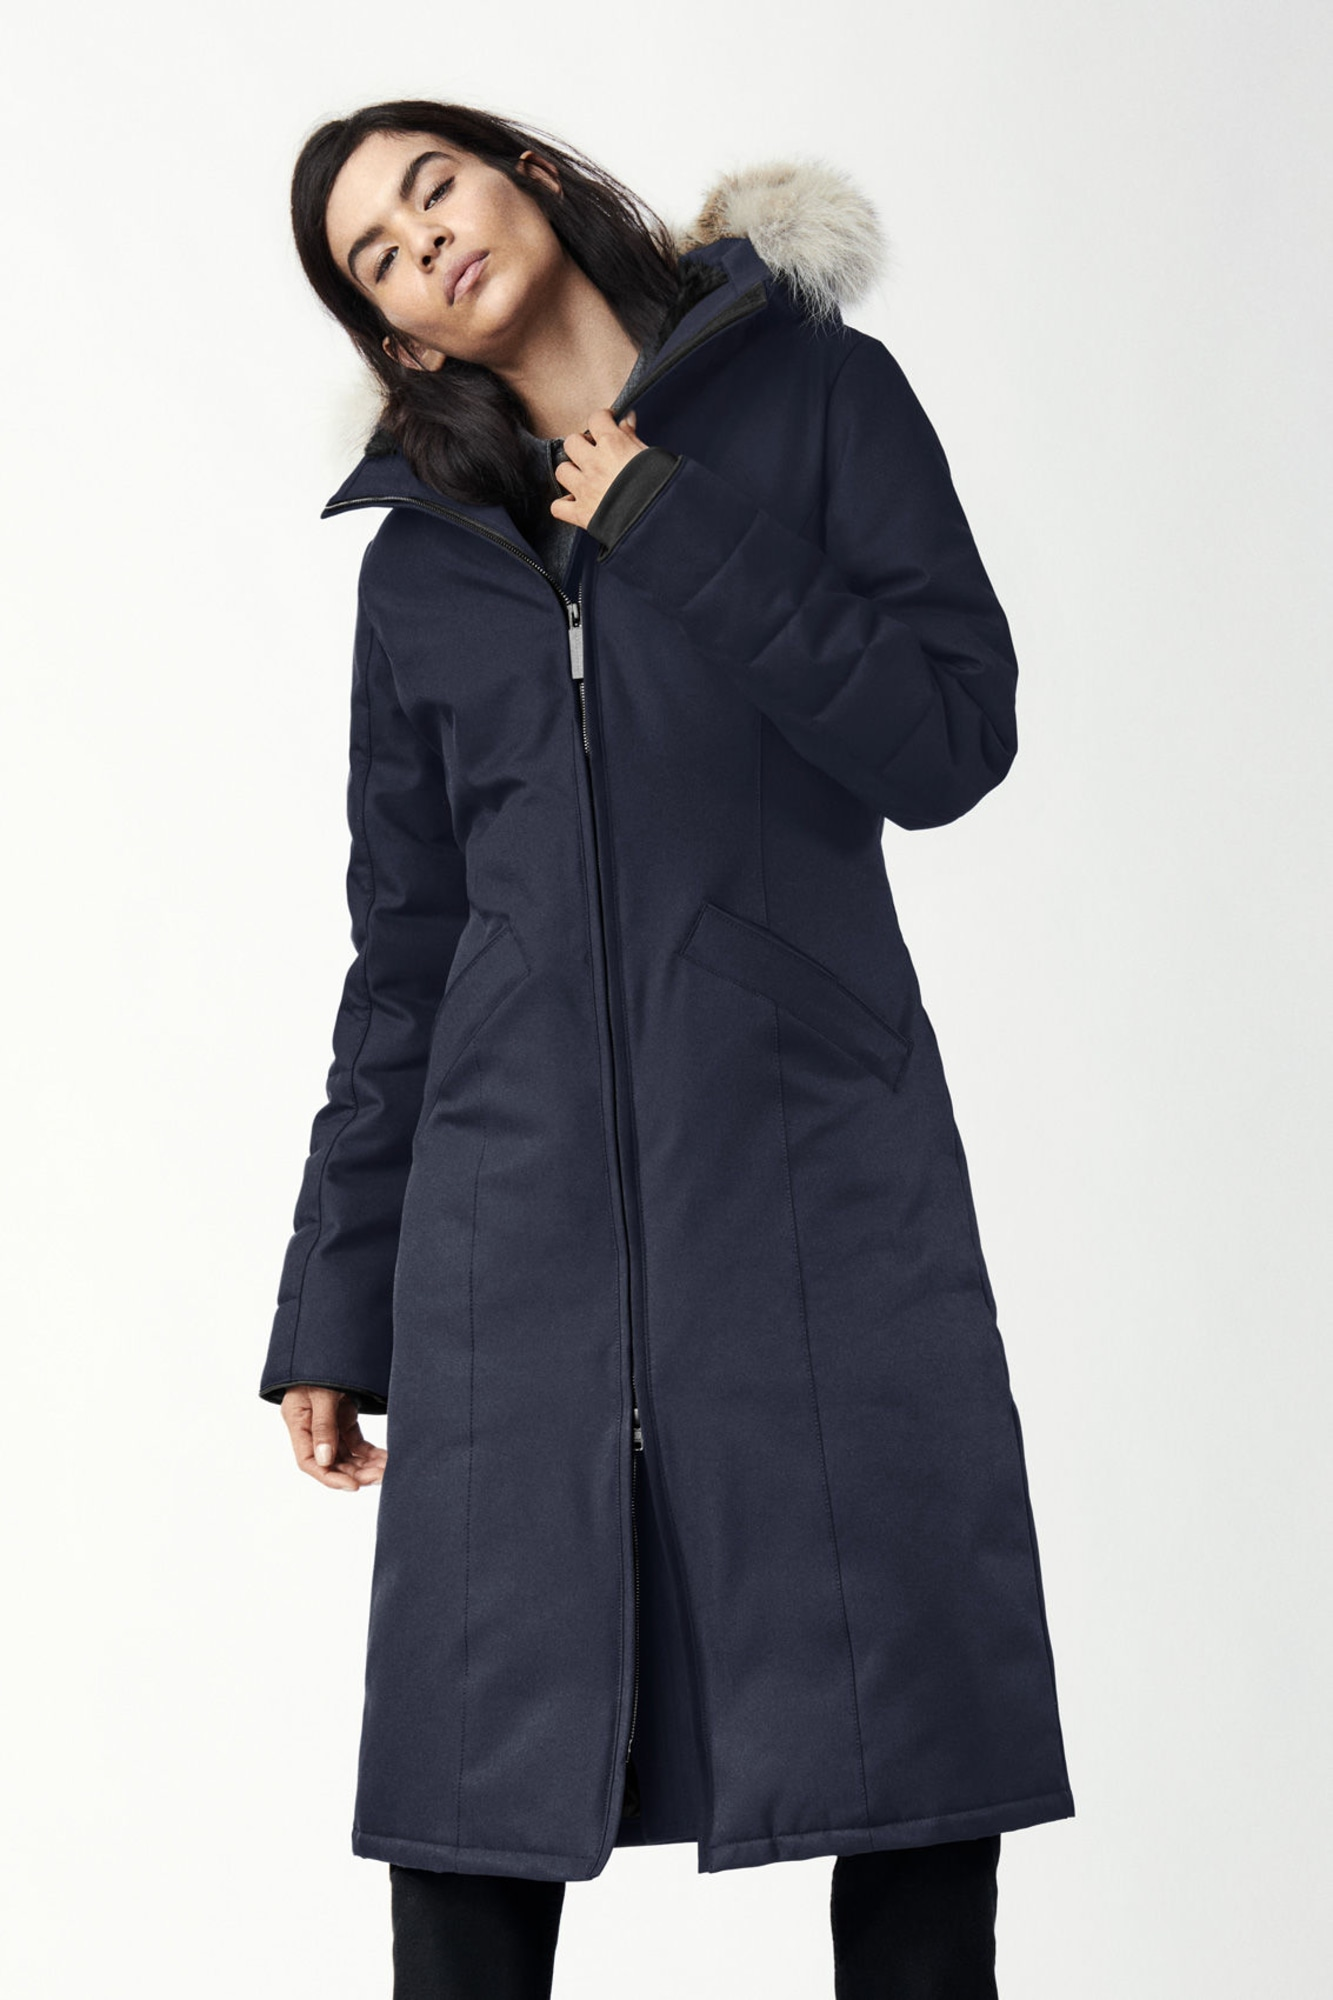 beddd770dc5 best price canada goose jacket washing out 6ee8c 73f07